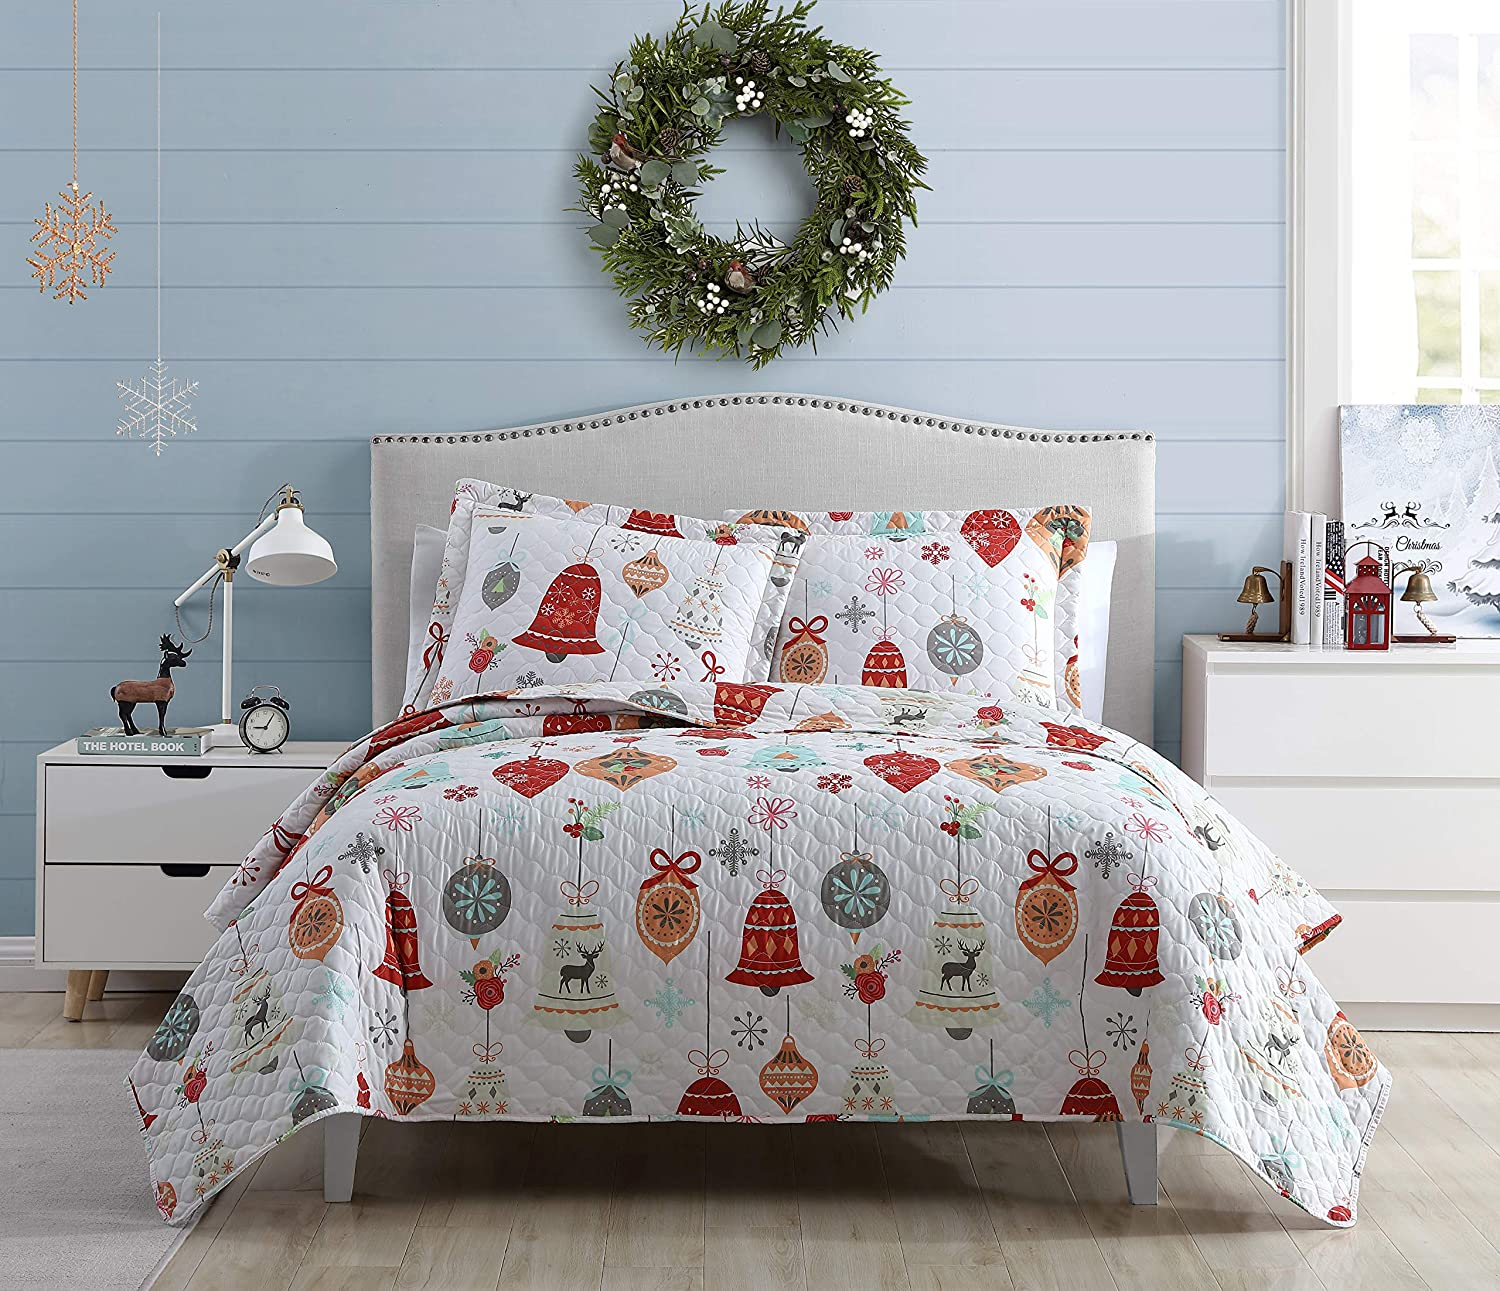 SL Spirit Linen Home EST. 1988 Holiday Collection Quilt Set - Ultra-Soft, Reversible Coverlet Bedding - Oversized Quilt with Matching Pillow Shams, King, Bells